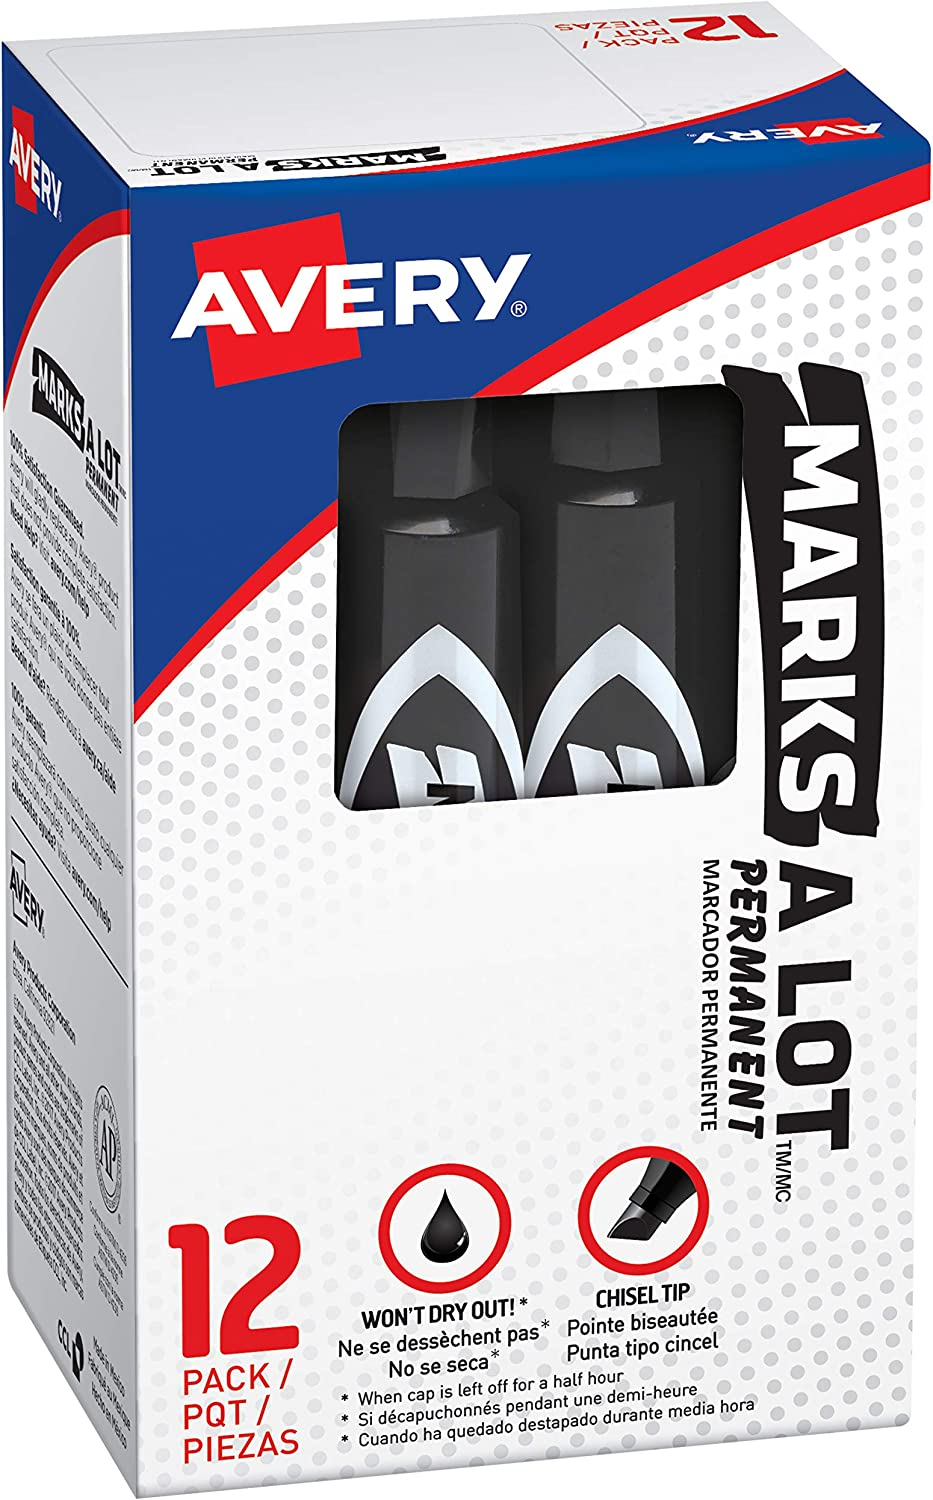 Avery Marks-A-Lot Regular Desk-Style Size Chisel Tip, 12 Black Permanent Markers are perfect for signs and posters (07888)